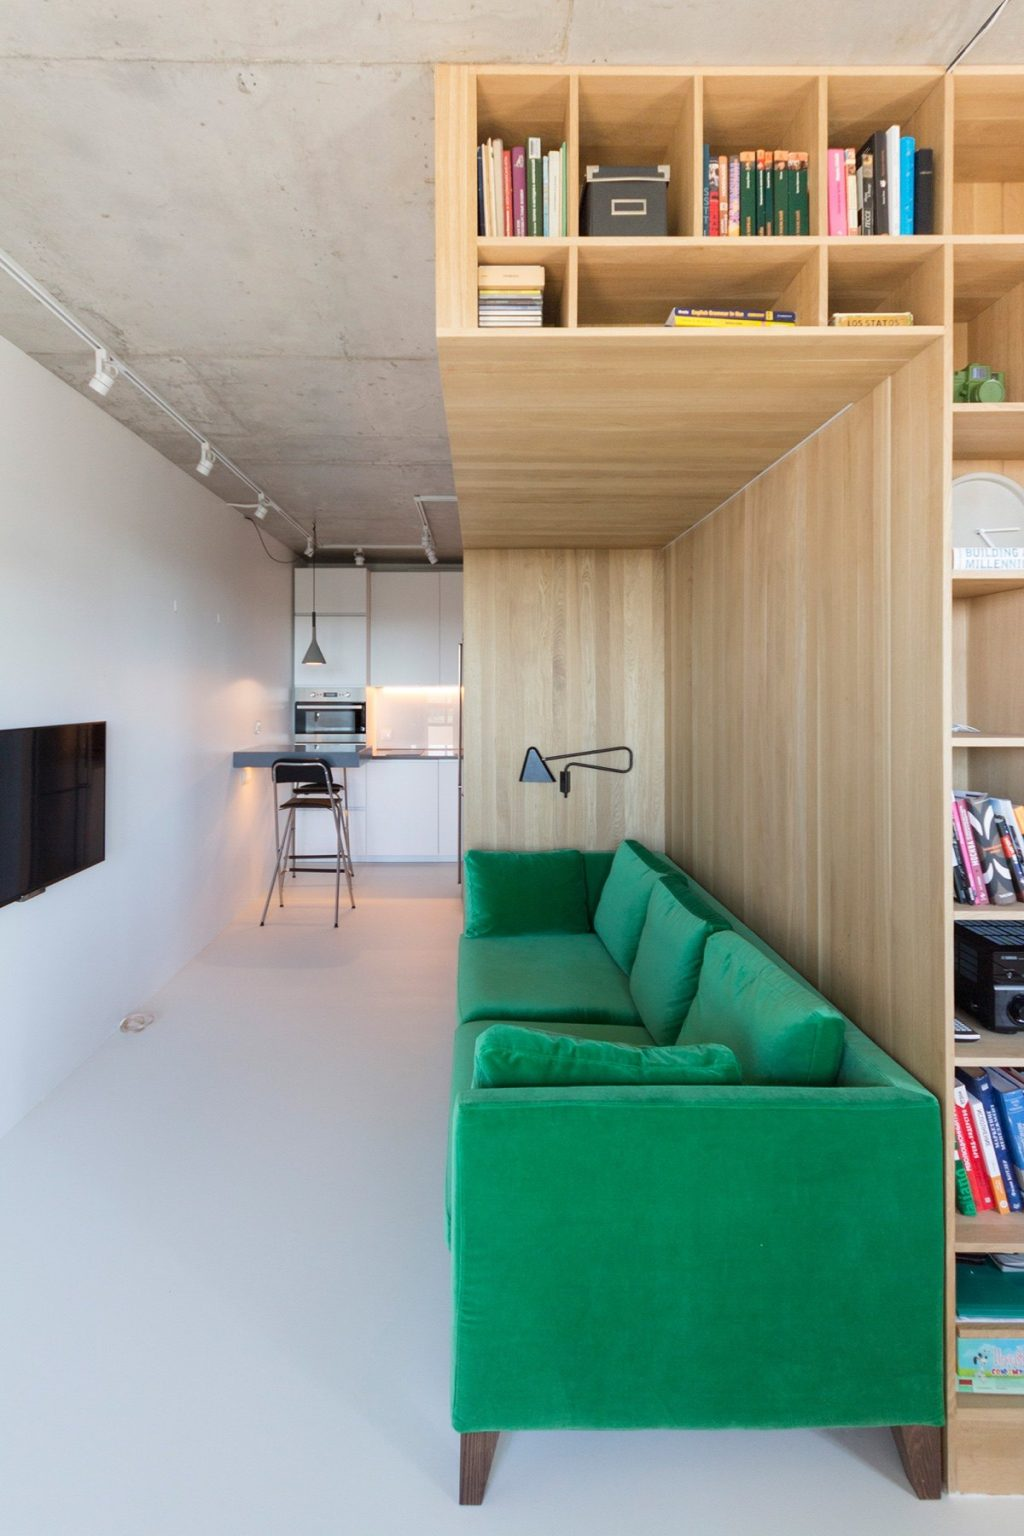 2.Apartment-under-50sqm-leaf-green-velvet-couch-L-shaped-bookcase-in-wood